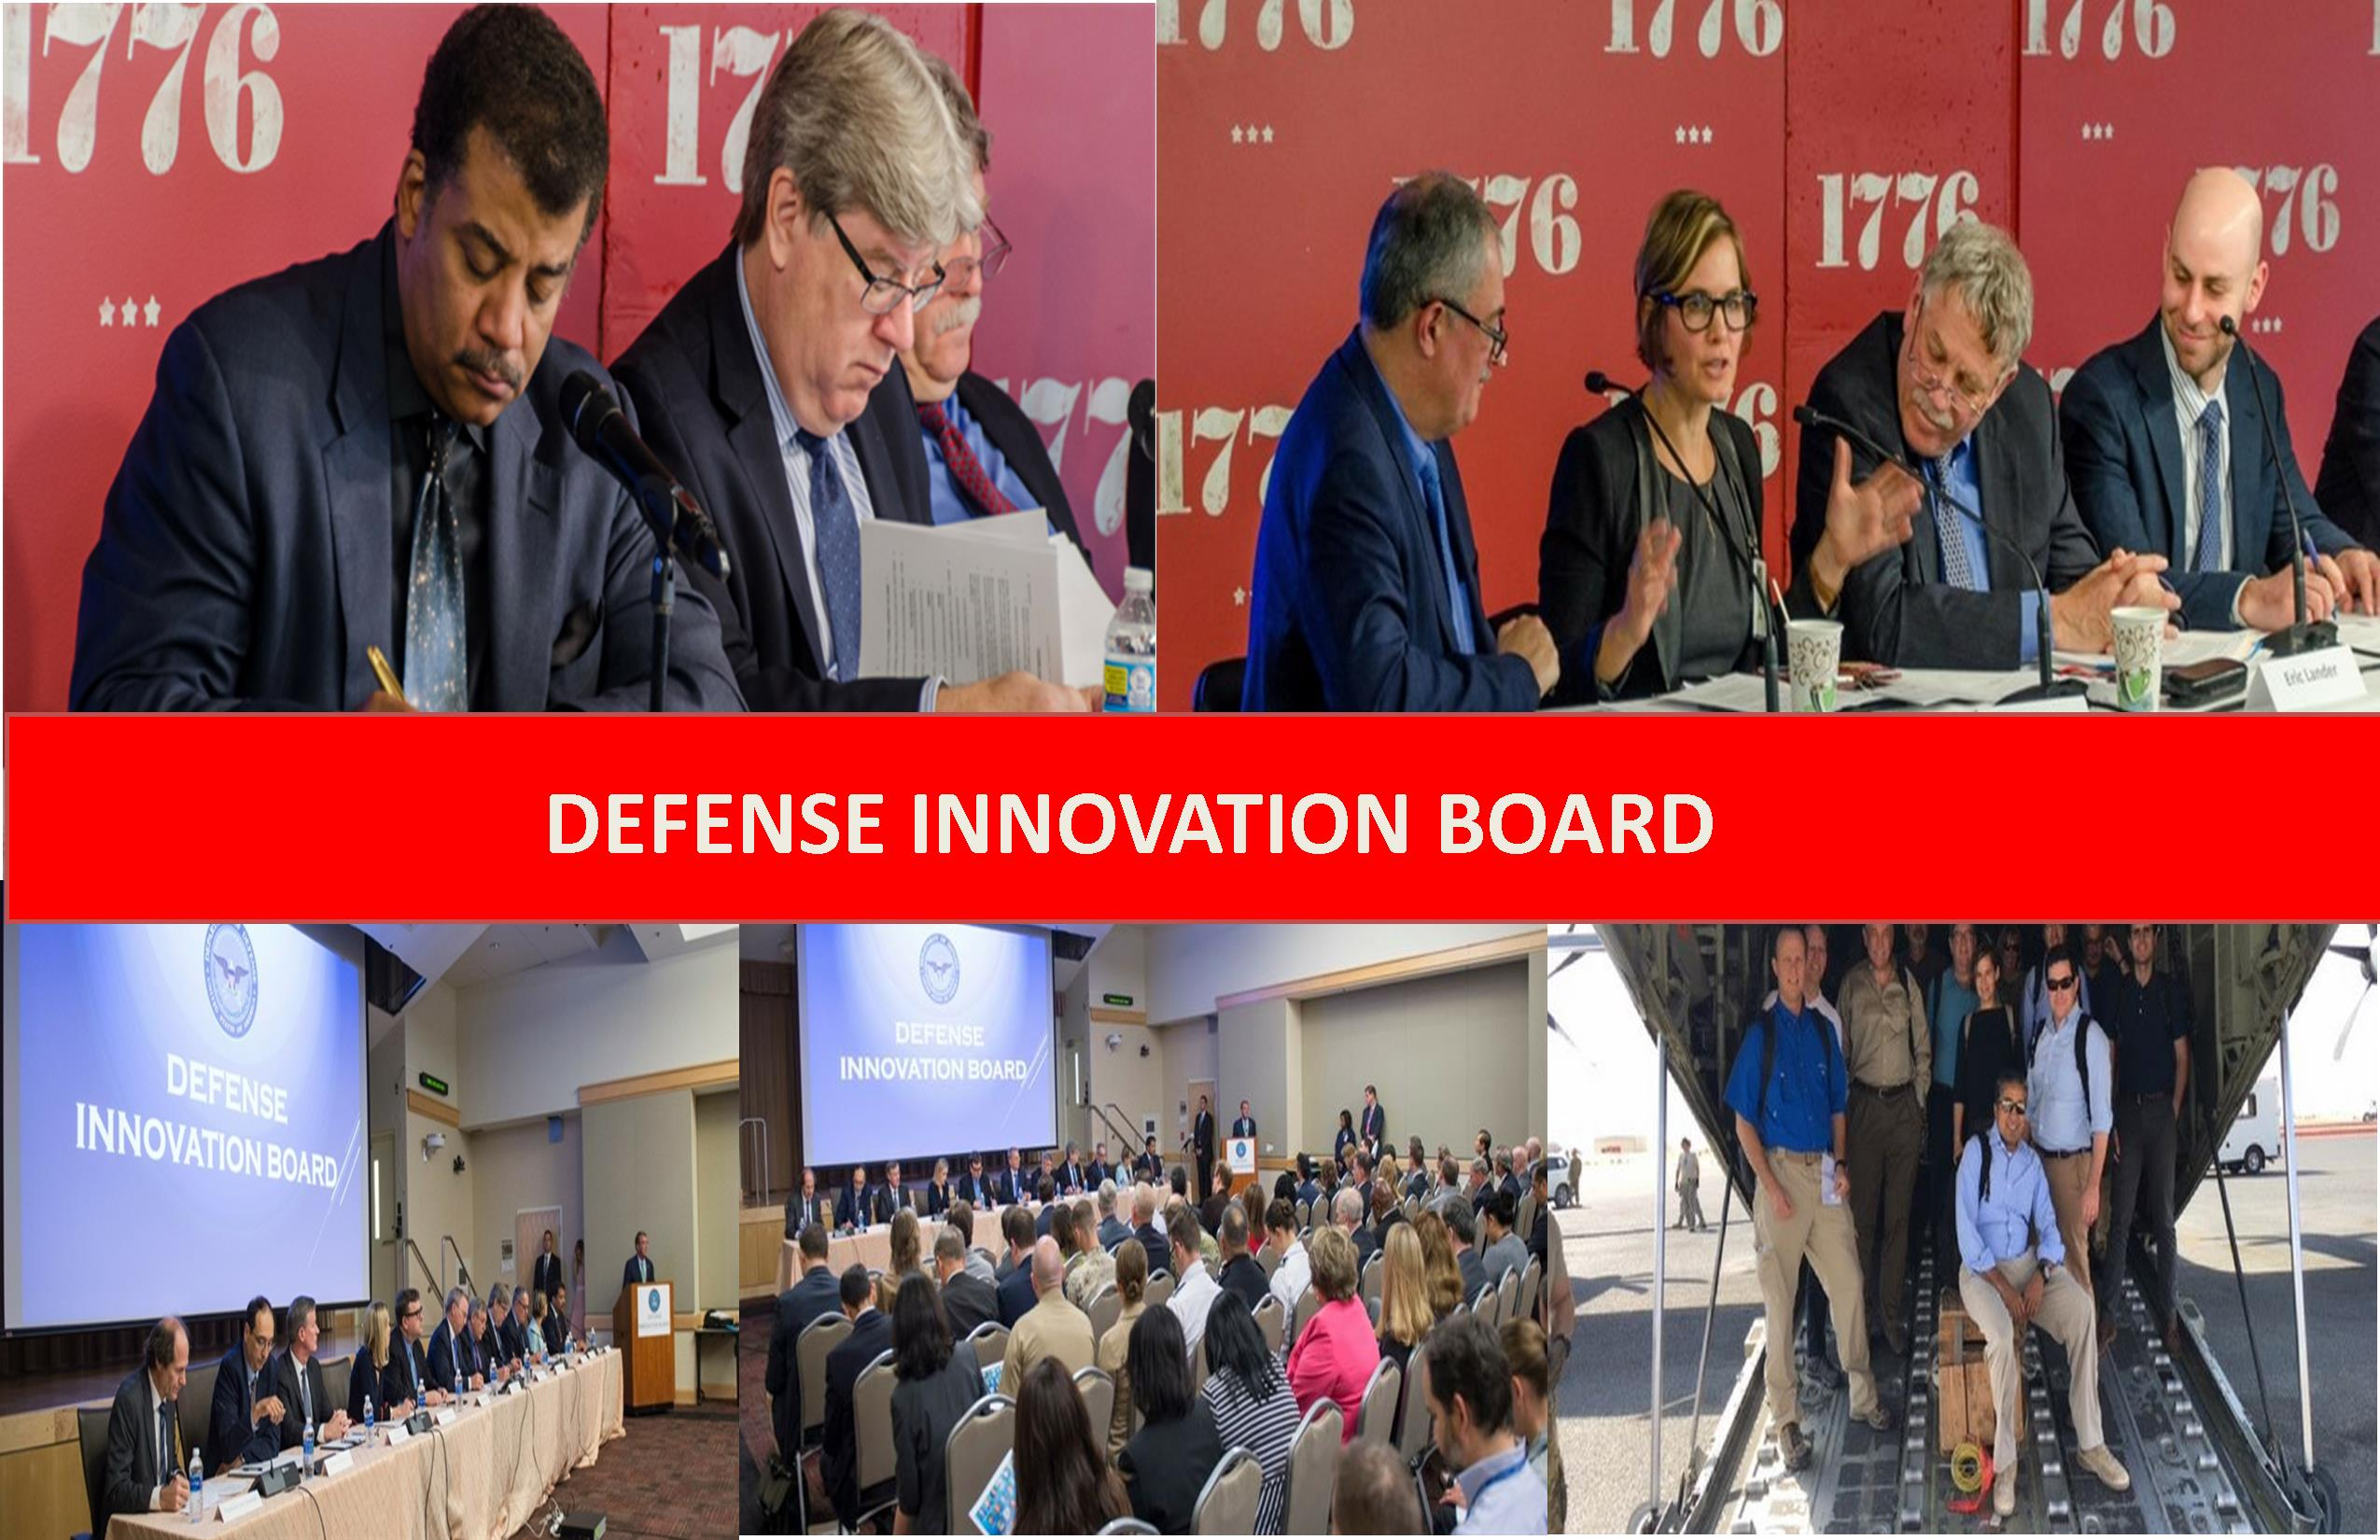 Defense Innovation Board